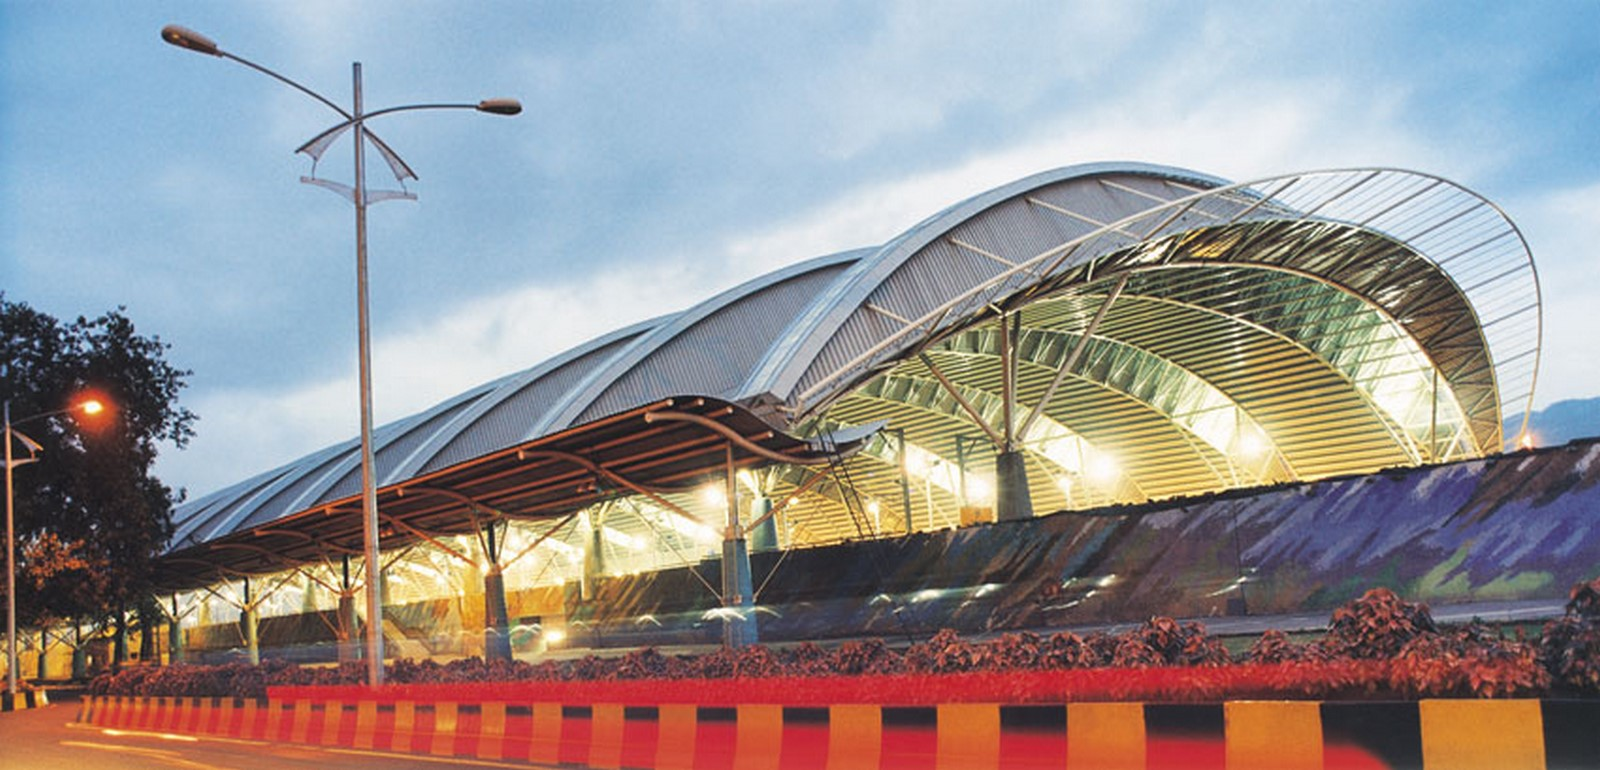 Turbhe Railway Station by Hafeez Contractor: The New Civic Symbol - Sheet1